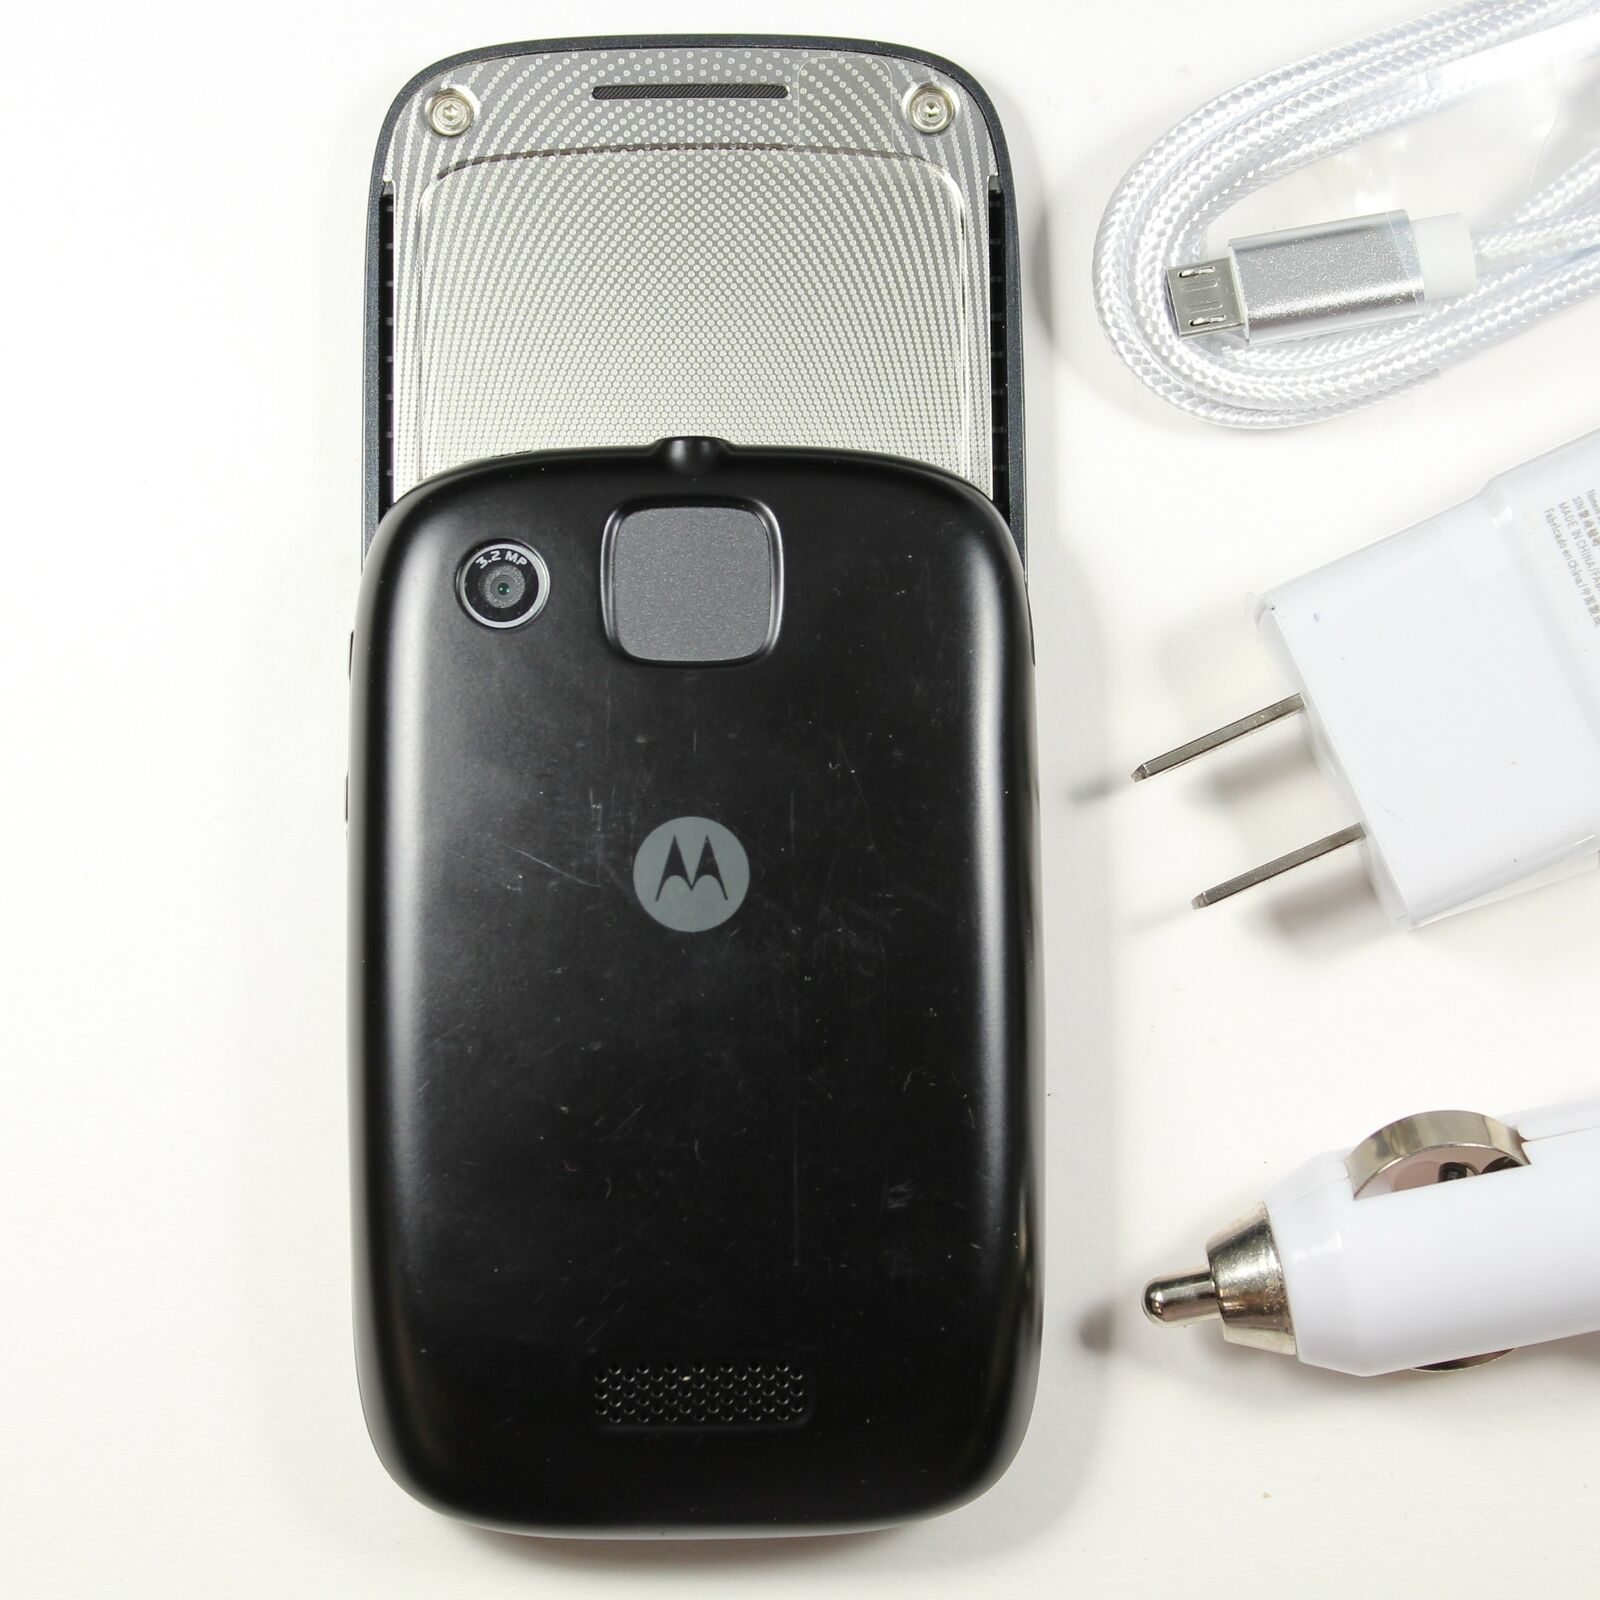 Motorola Spice XT300 (UNLOCKED GSM) 2G Slider Smartphone 3MP Camera Android